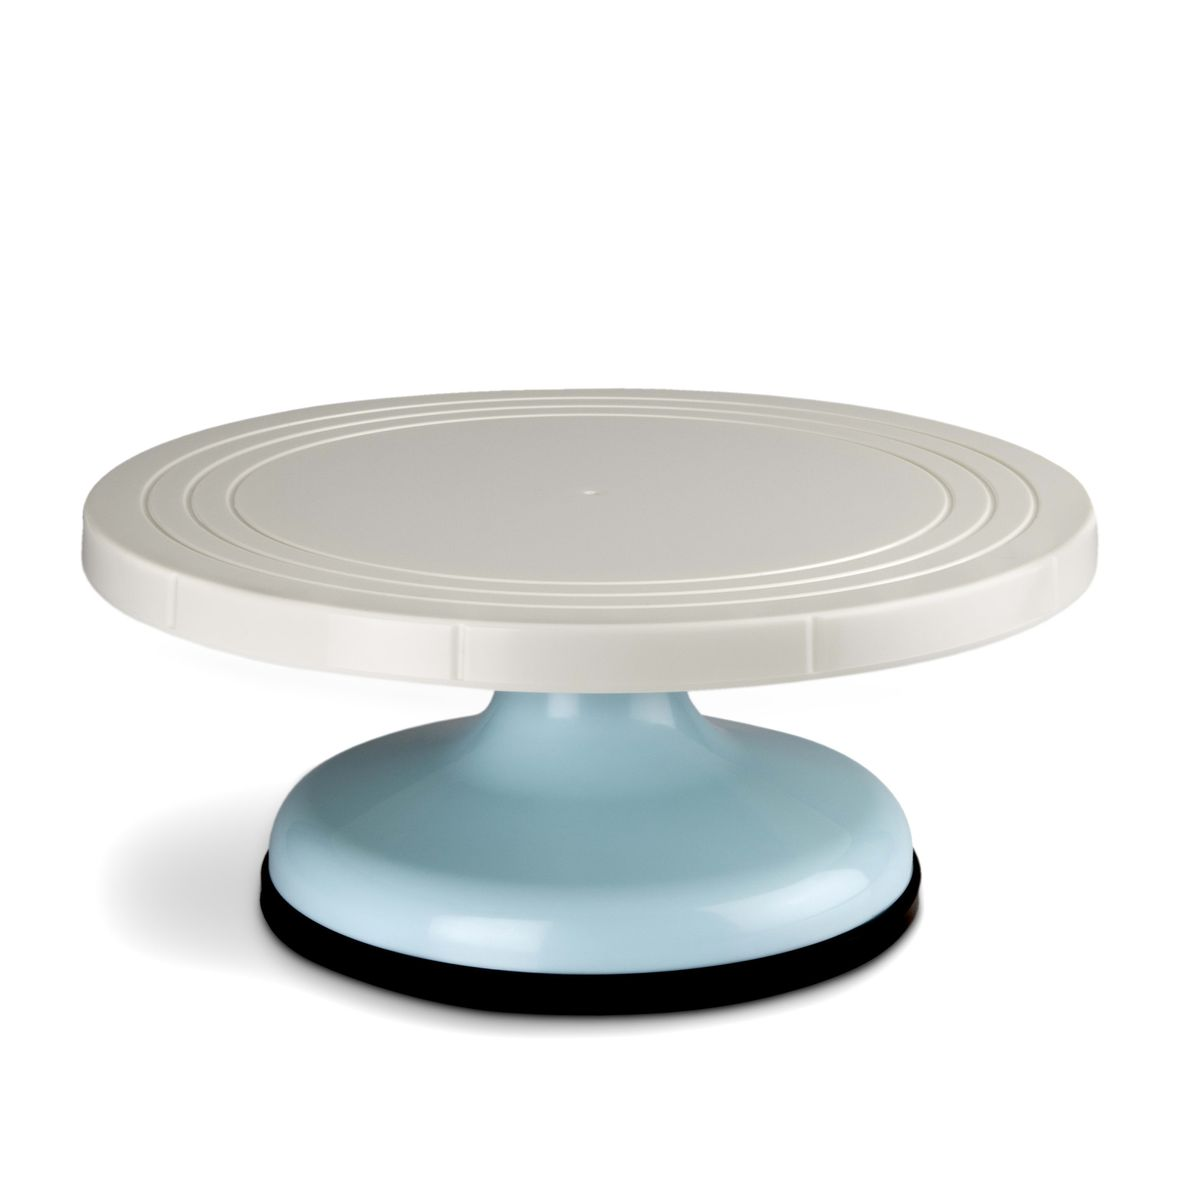 Humble And Mash  Cake Decorating Stand  Blue  HMTURN  Buy Online in South Africa  takealotcom